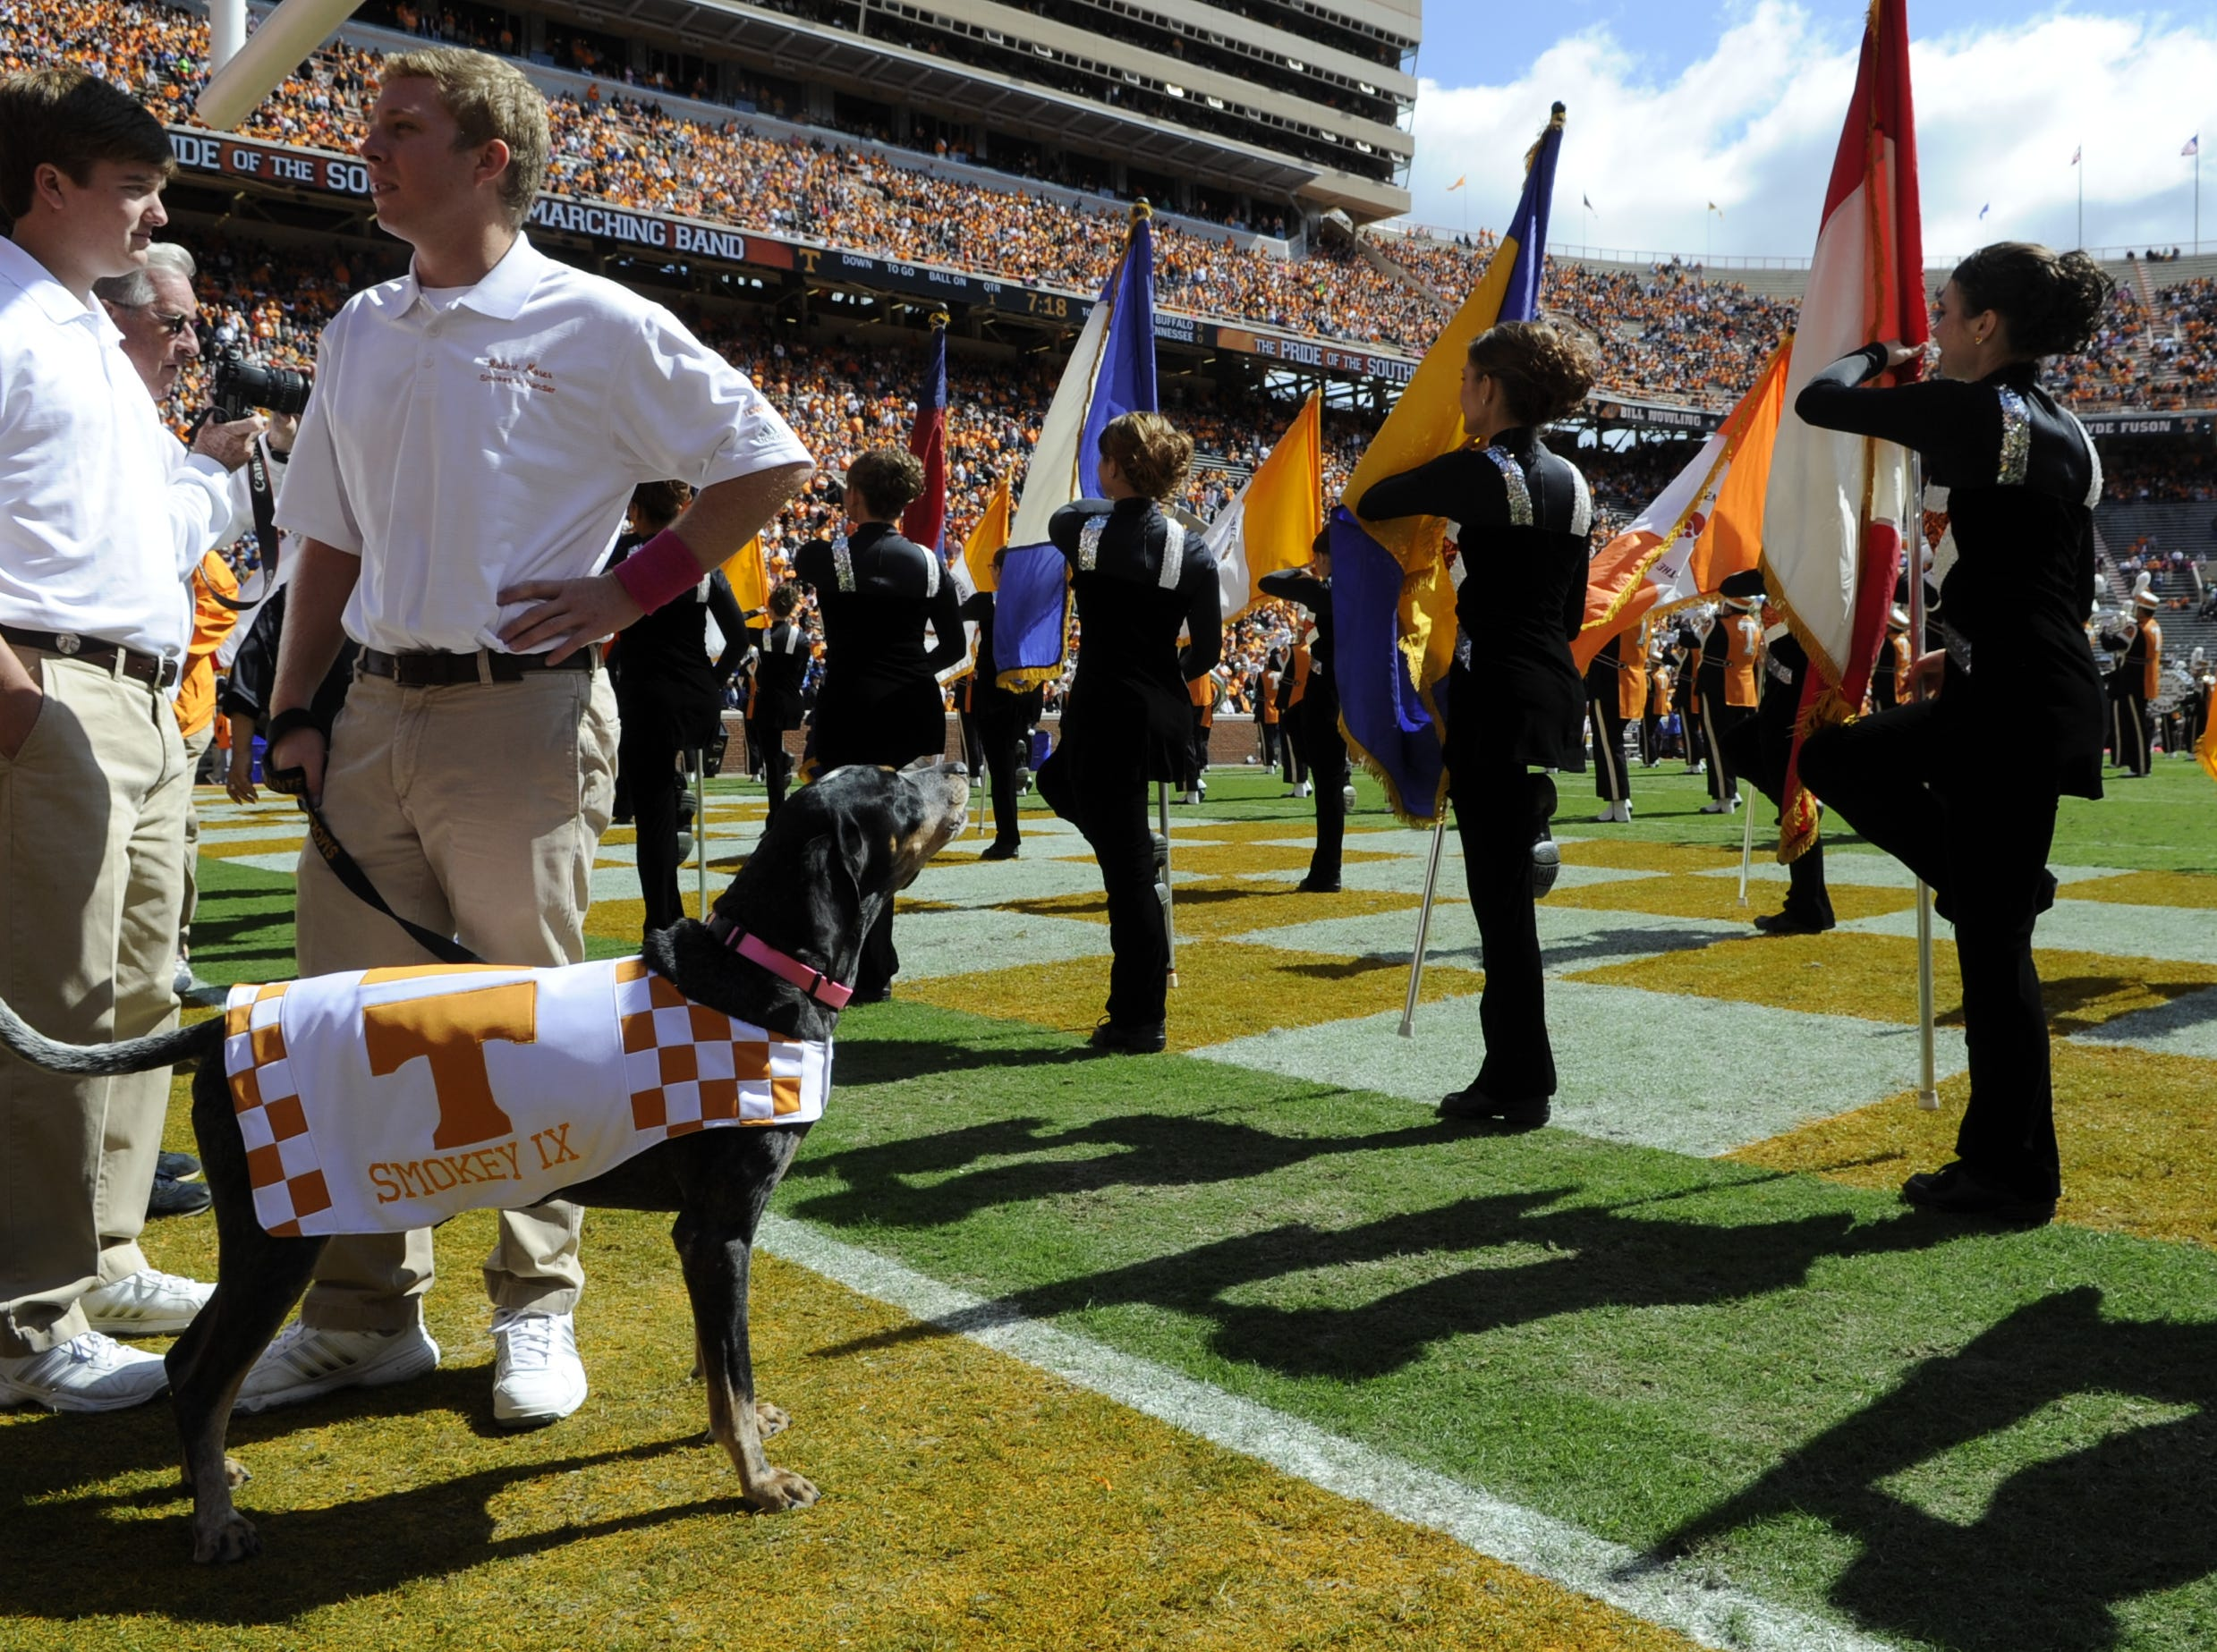 UT mascot Smokey with his handler Robert Moser before the Buffalo game at Neyland Stadium on Saturday Oct 1, 2011. Tennessee won the game 41-10.